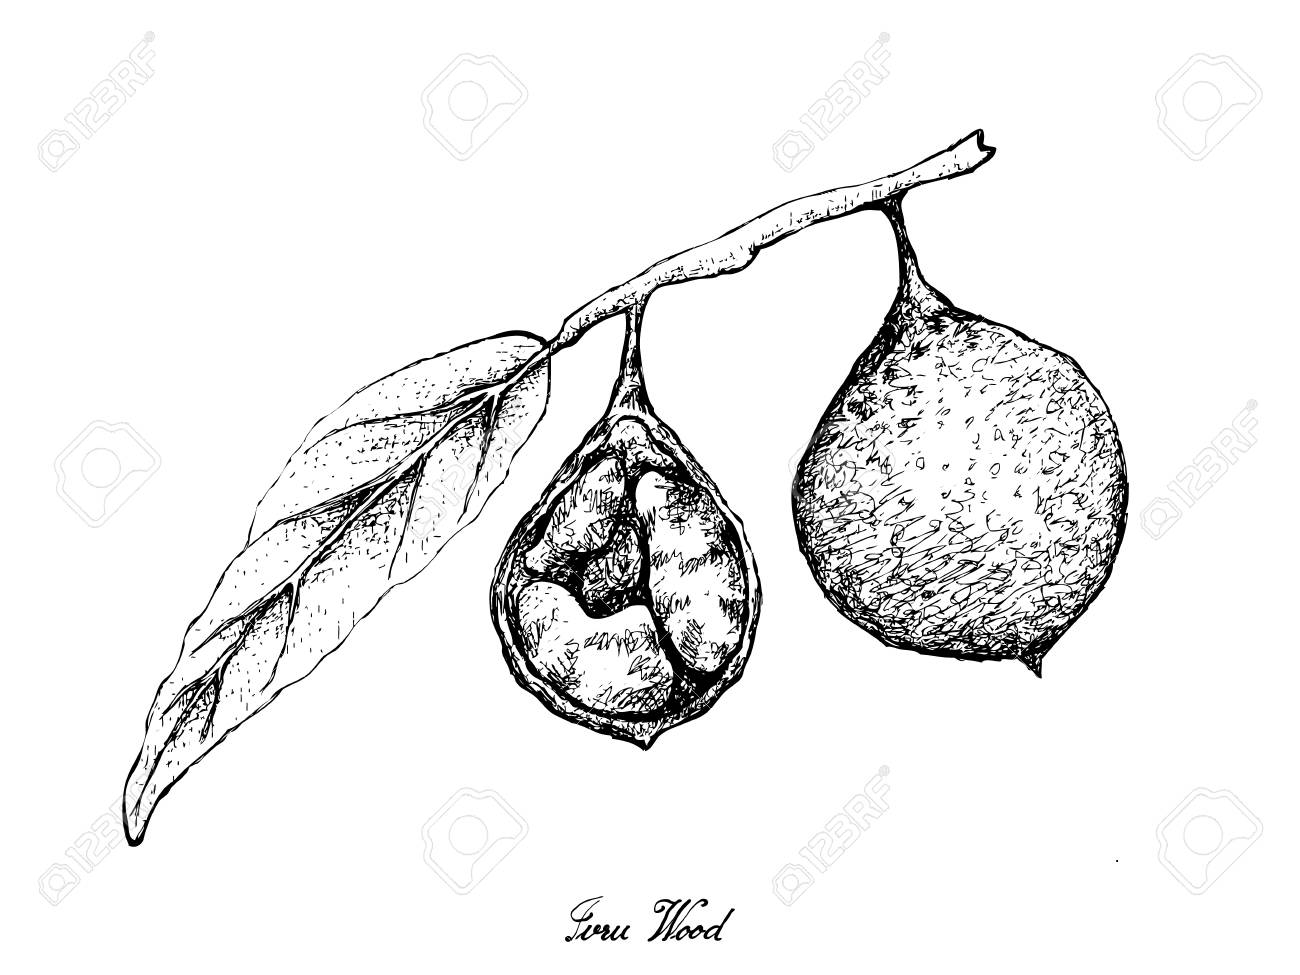 Tropical Fruits, Illustration of Hand Drawn Sketch Fresh Ivru Wood or Siphonodon Celastrineus Fruits Isolated on White Background. - 127290018